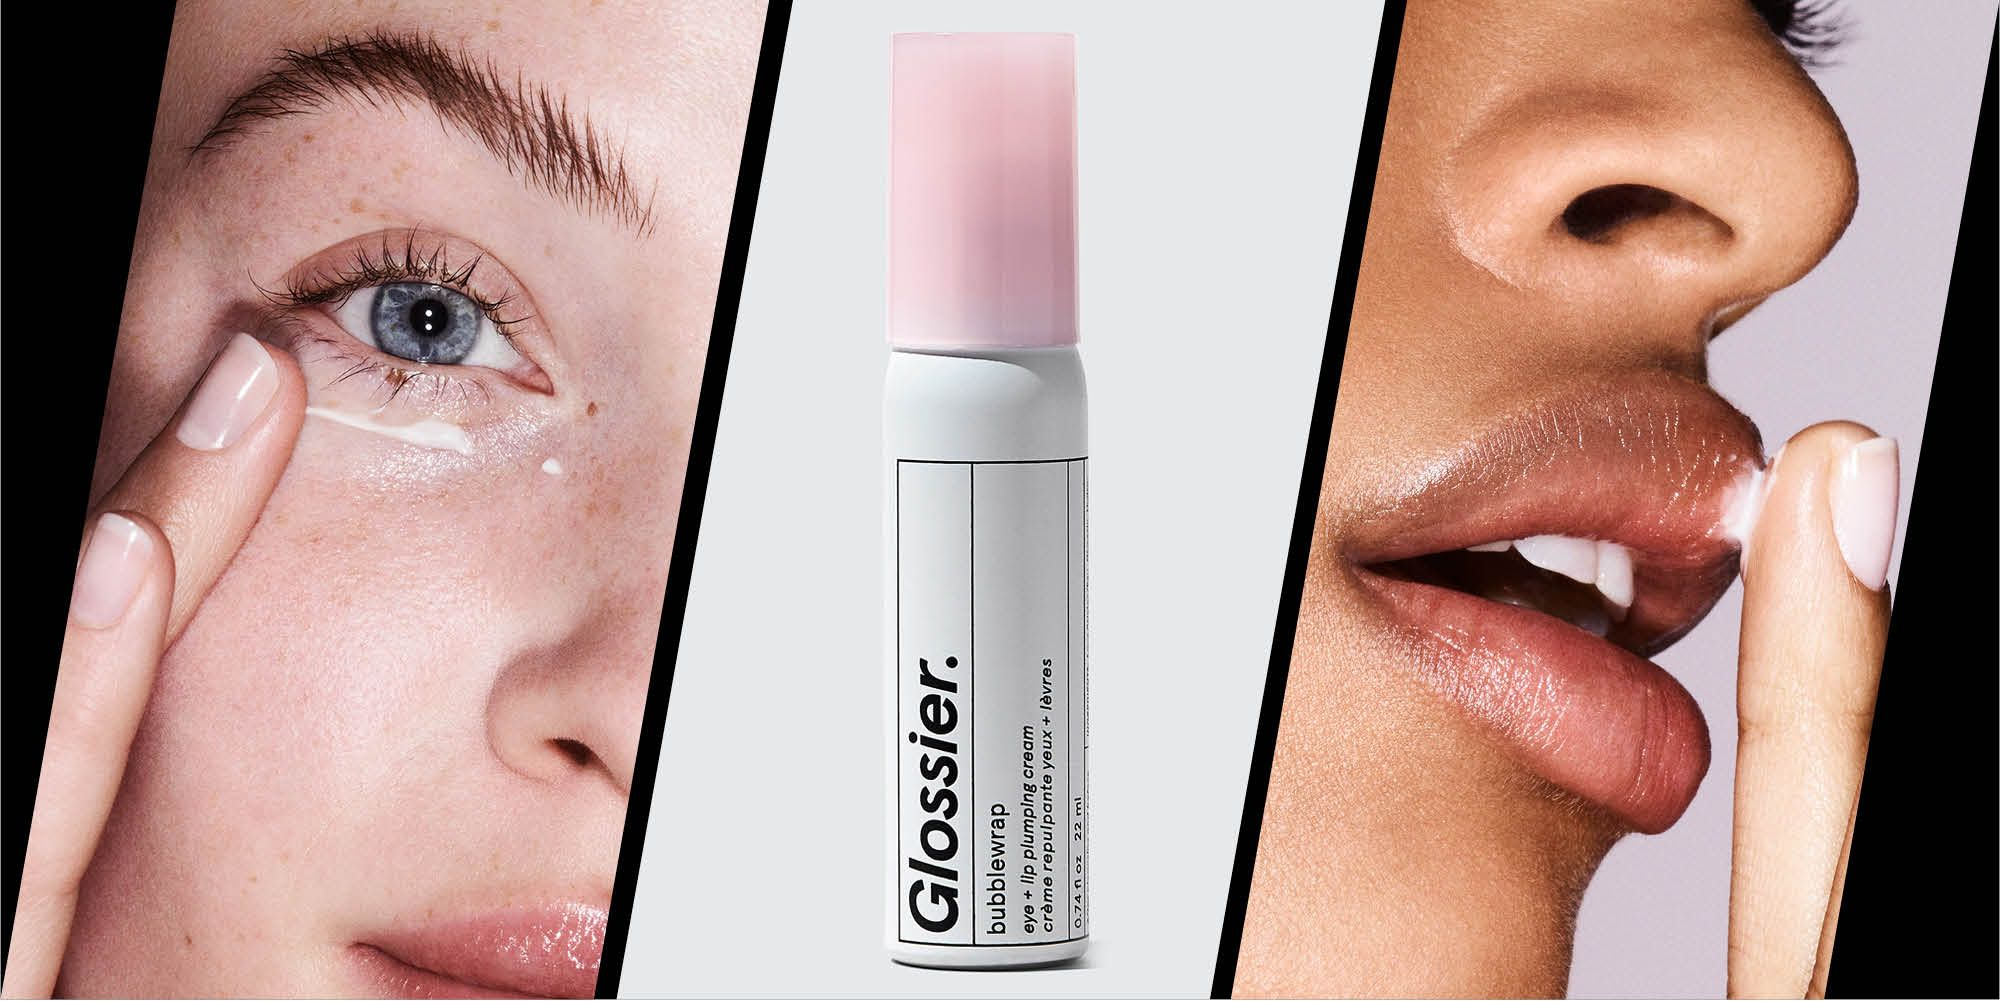 Glossier Bubblewrap is inspired by a make-up artist hack